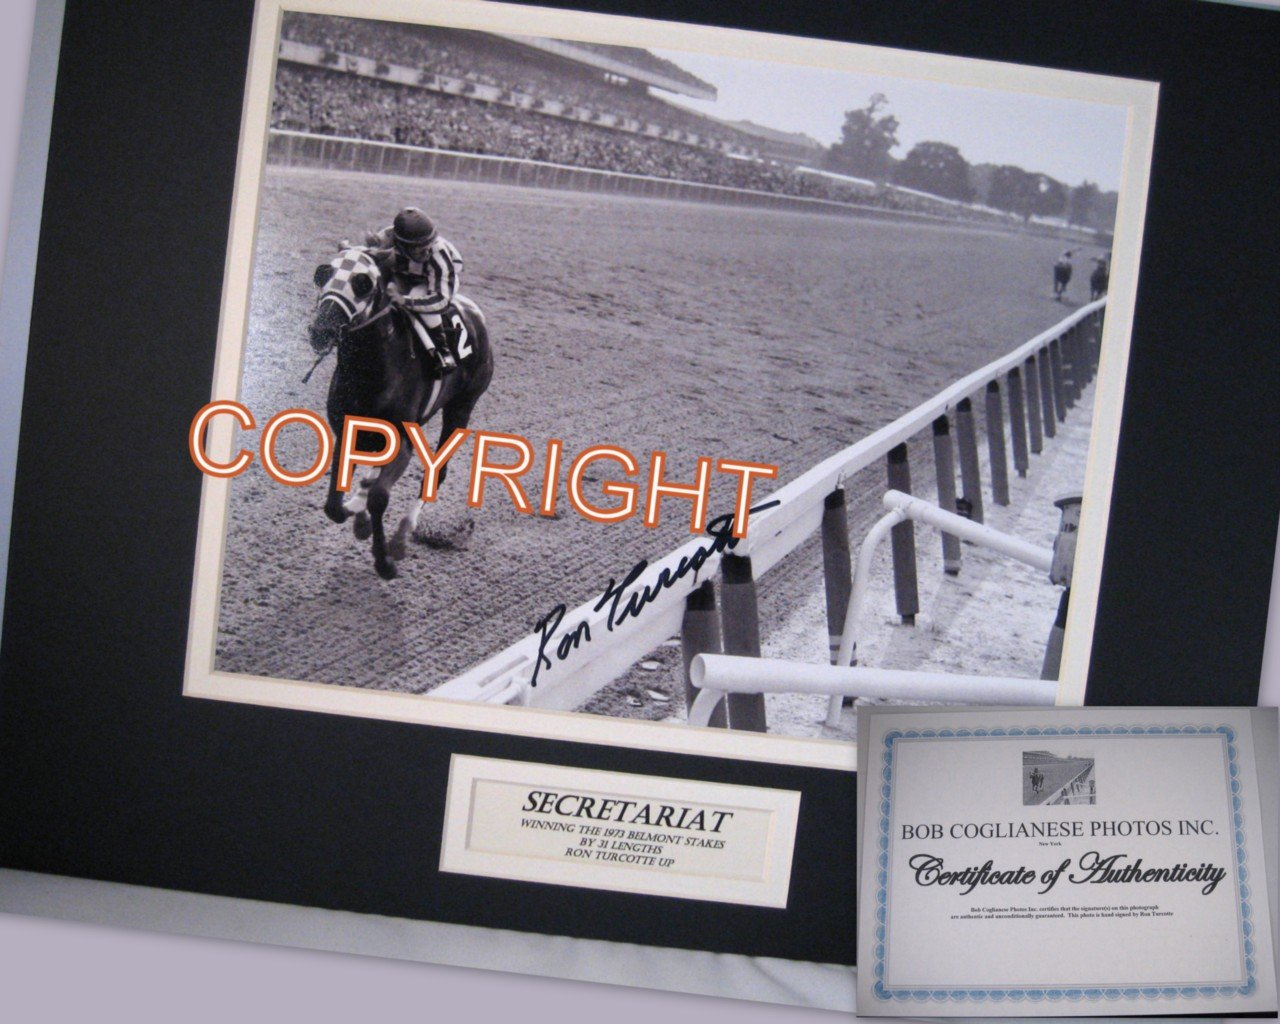 Iconic Secretariat Ron Turcotte Double Mat 1973 Belmont Photo Triple Crown Win Hand Sined Voted the Greatest Horse Racing Photo of All Time